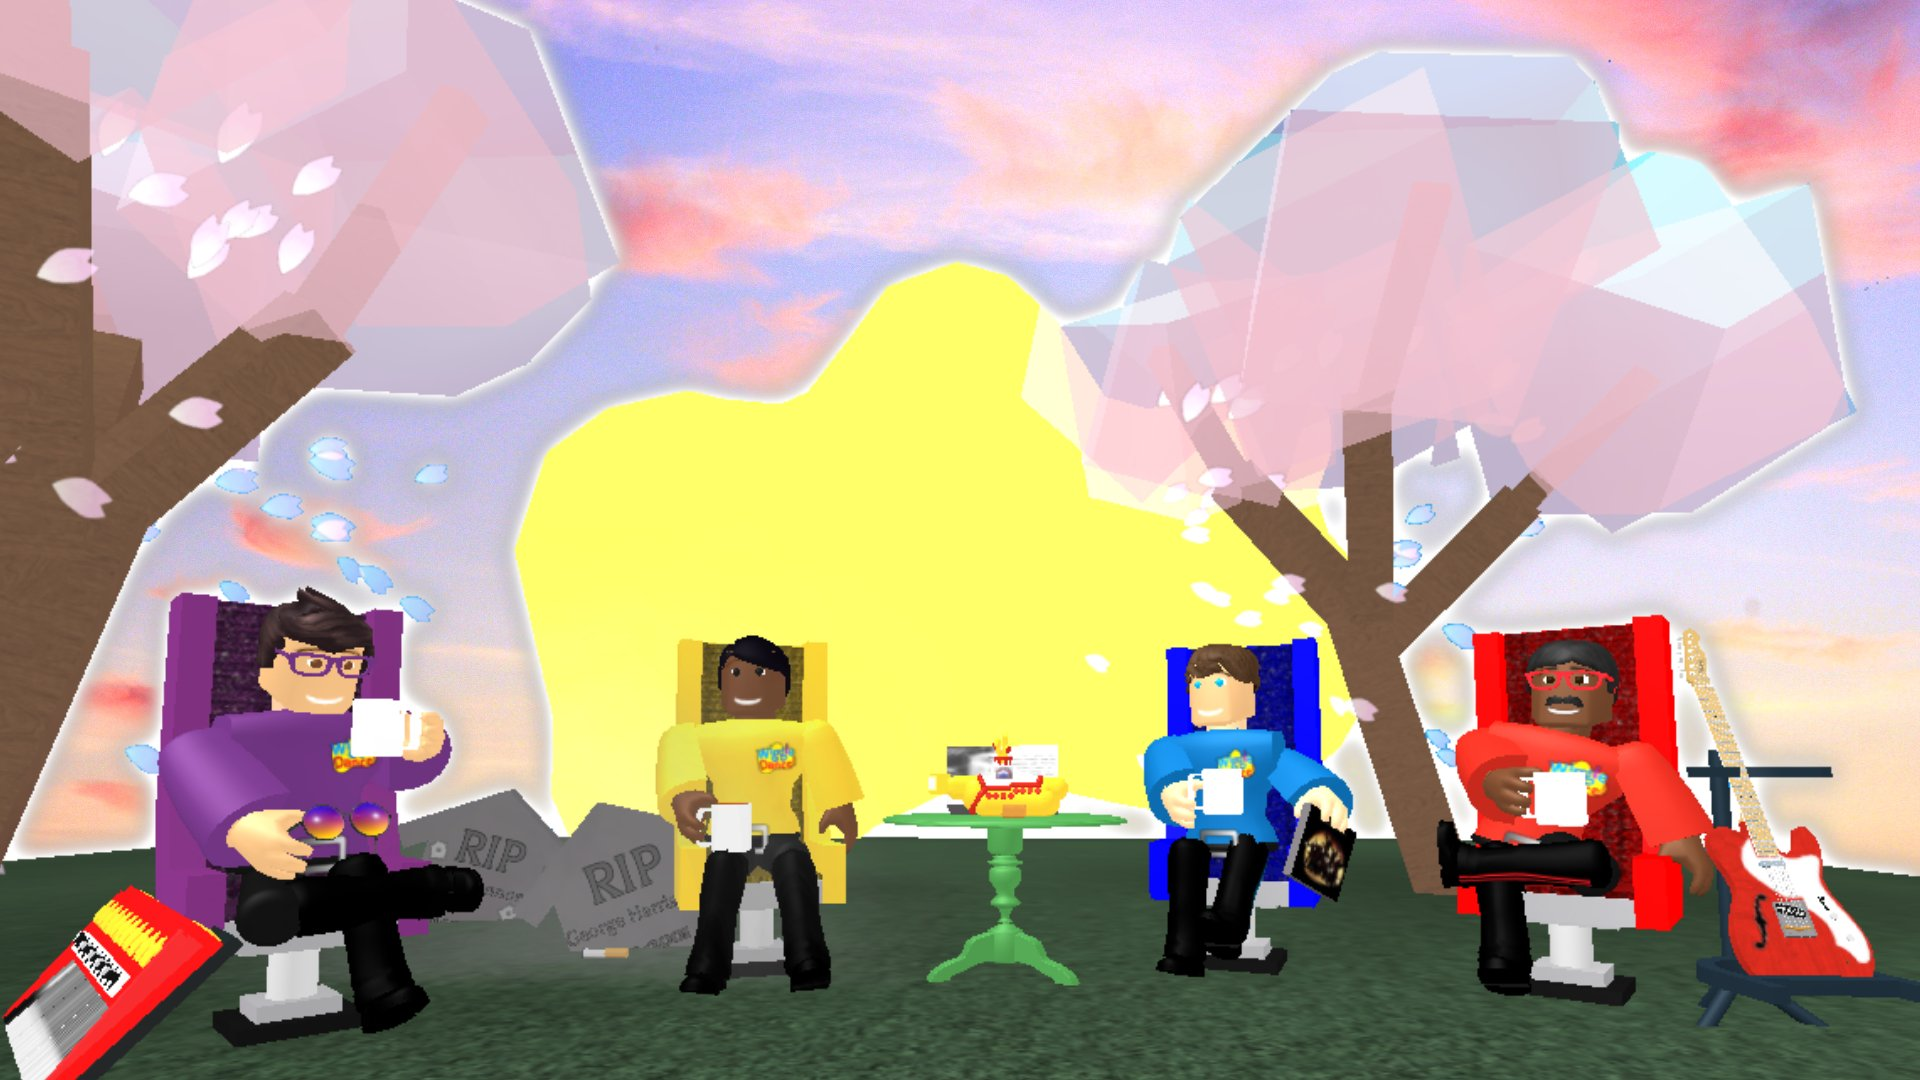 Wiggle Dance Roblox On Twitter The Peace Is In Your Mind